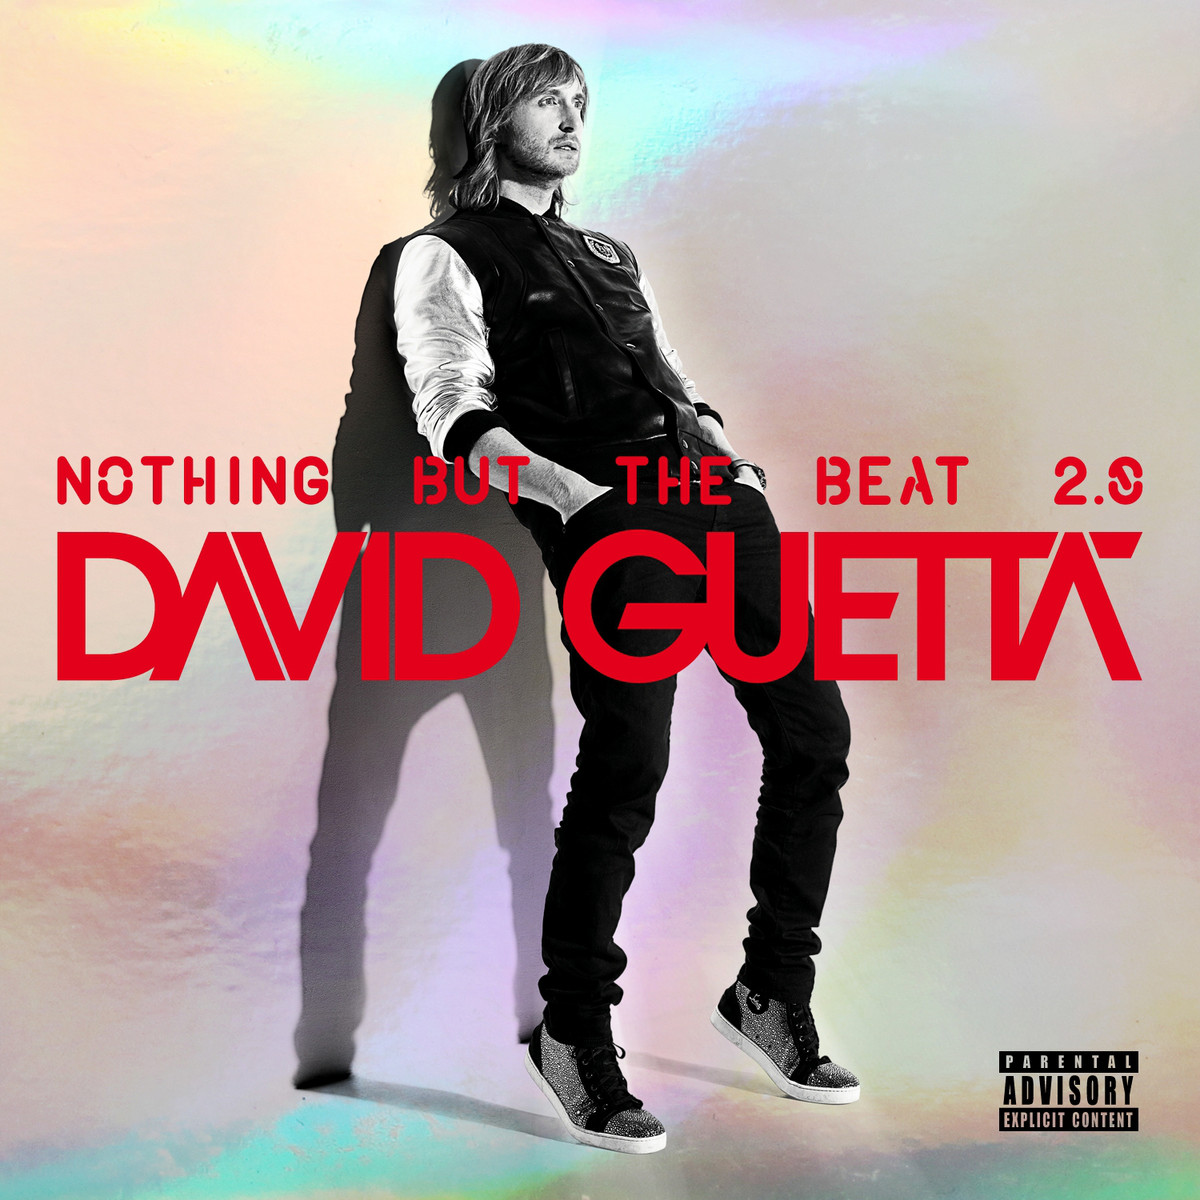 http://1.bp.blogspot.com/-LN96v6As0QE/UEOoZm68TjI/AAAAAAAAAXk/HF2zmrUwwck/s1600/David-Guetta-Nothing-But-the-Beat-2_0_%5BEnfermoGP%5D.png